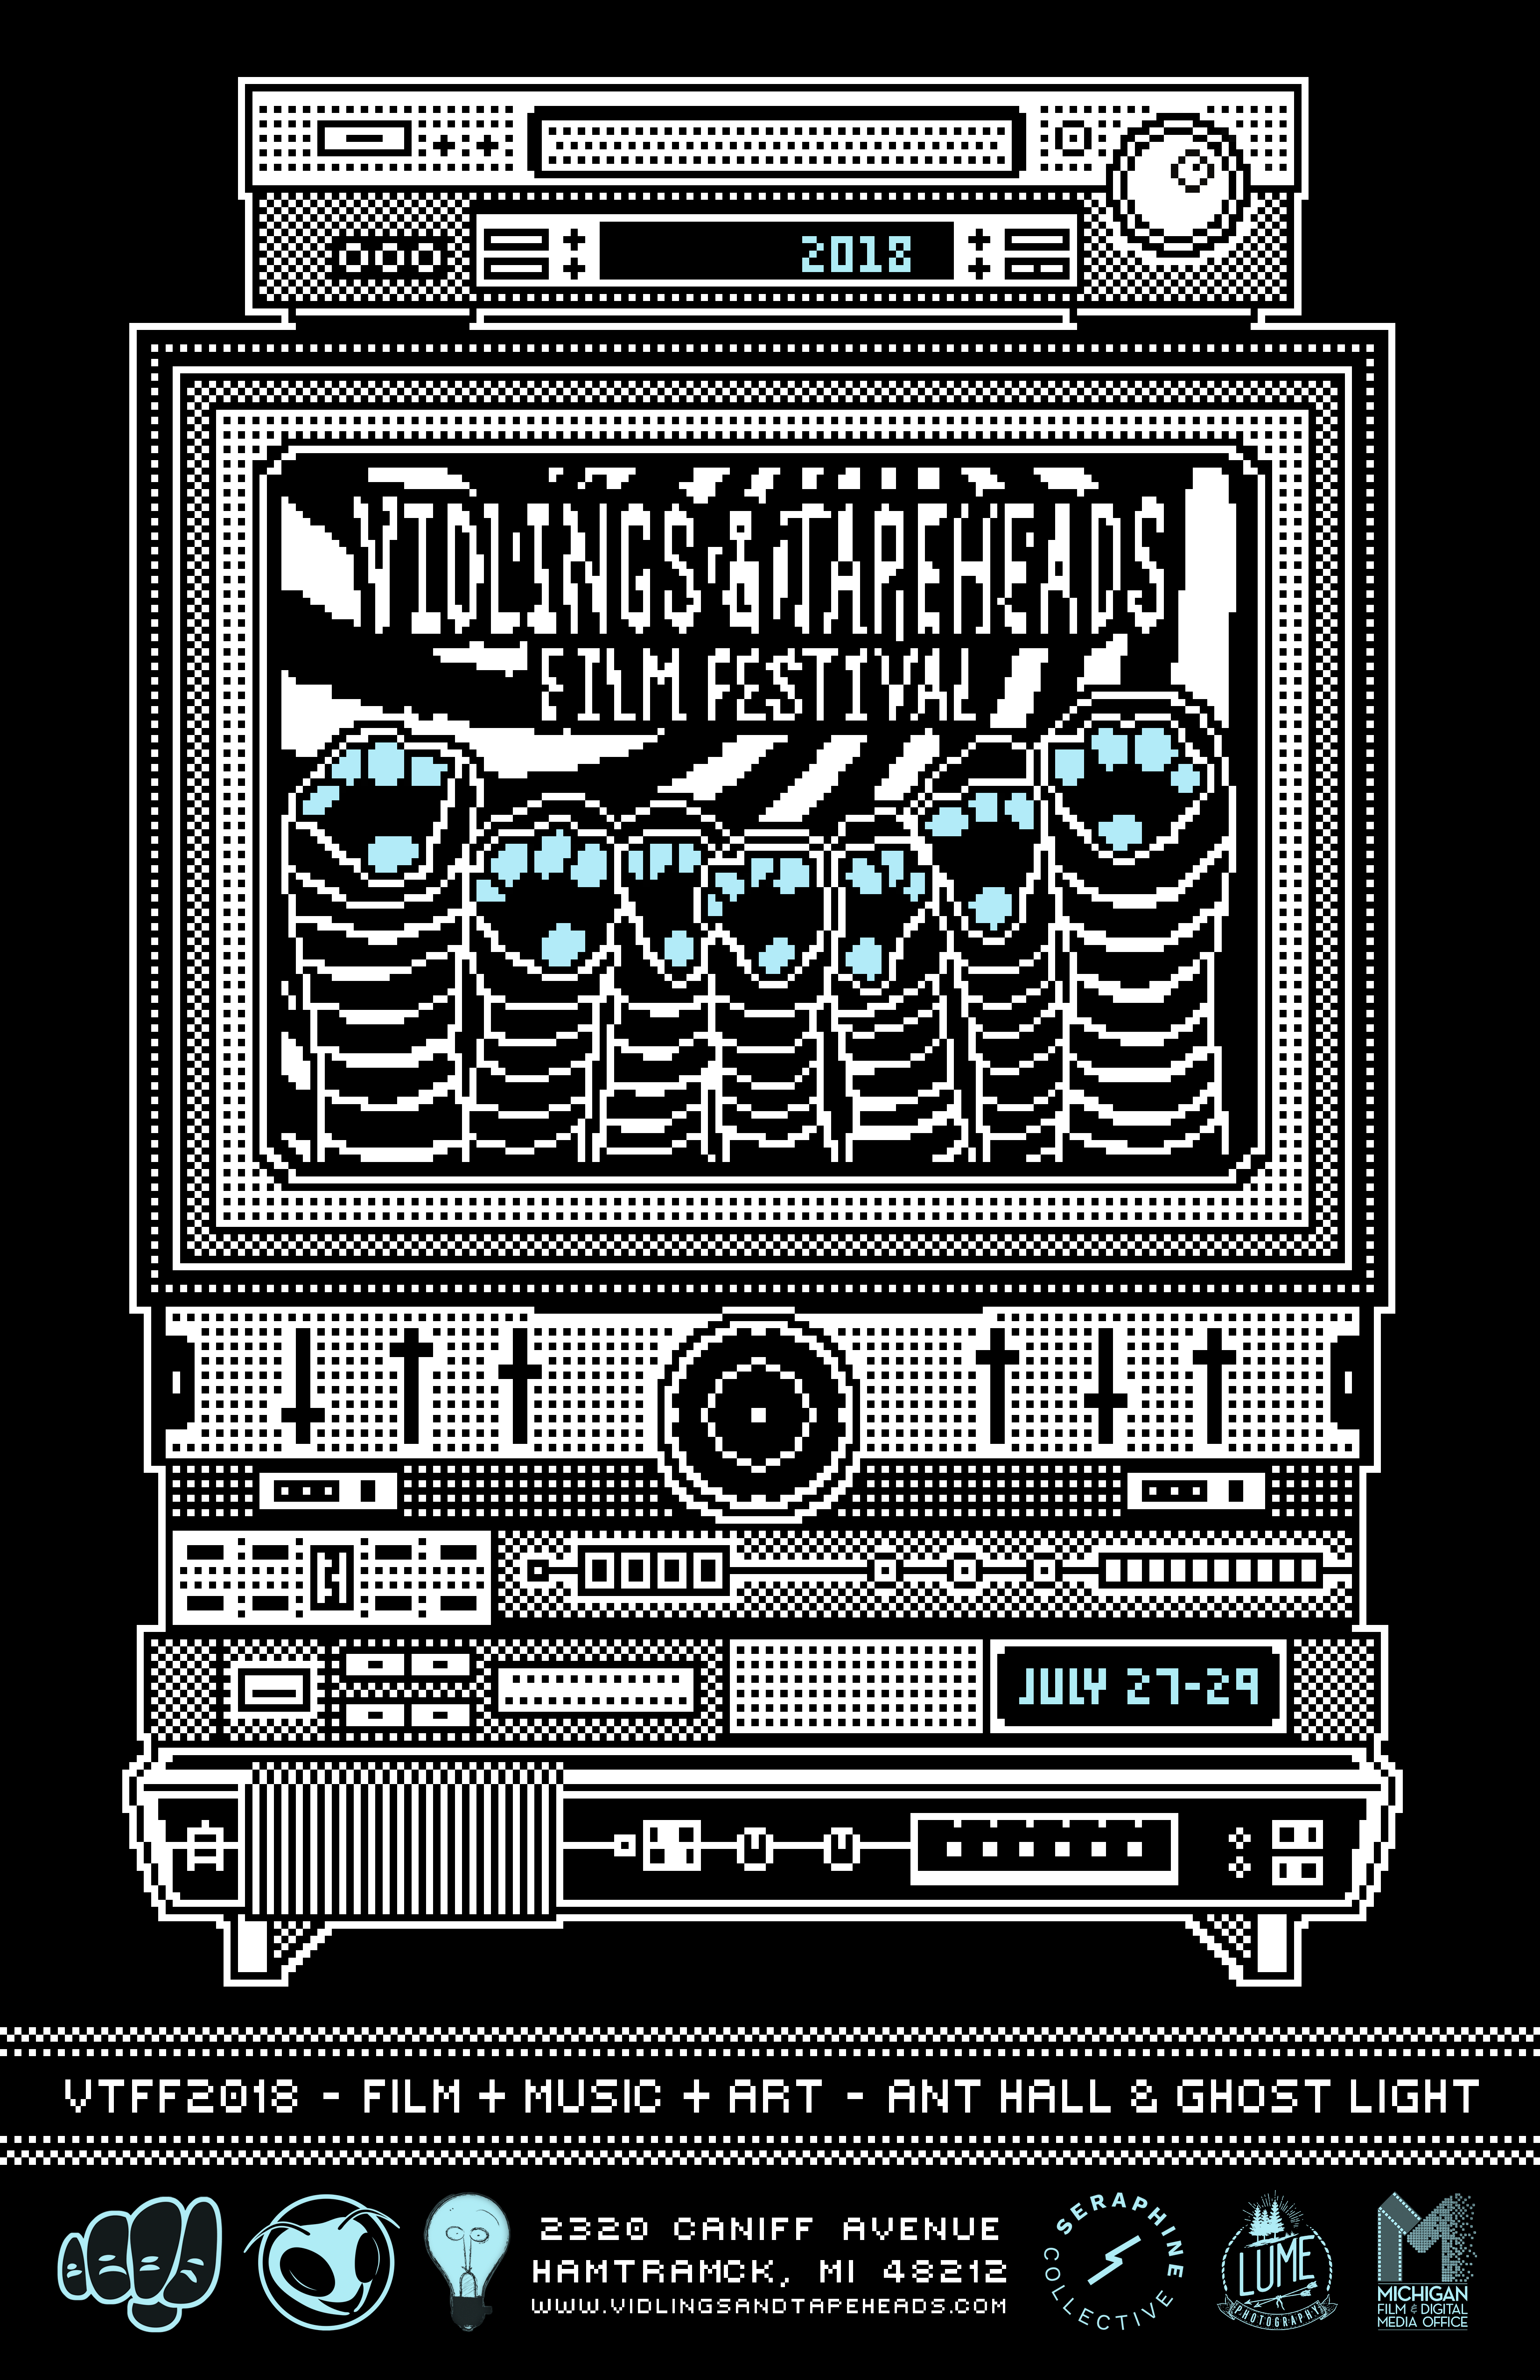 Vidlings & Tapeheads Film Festival 2018 | July 27-29